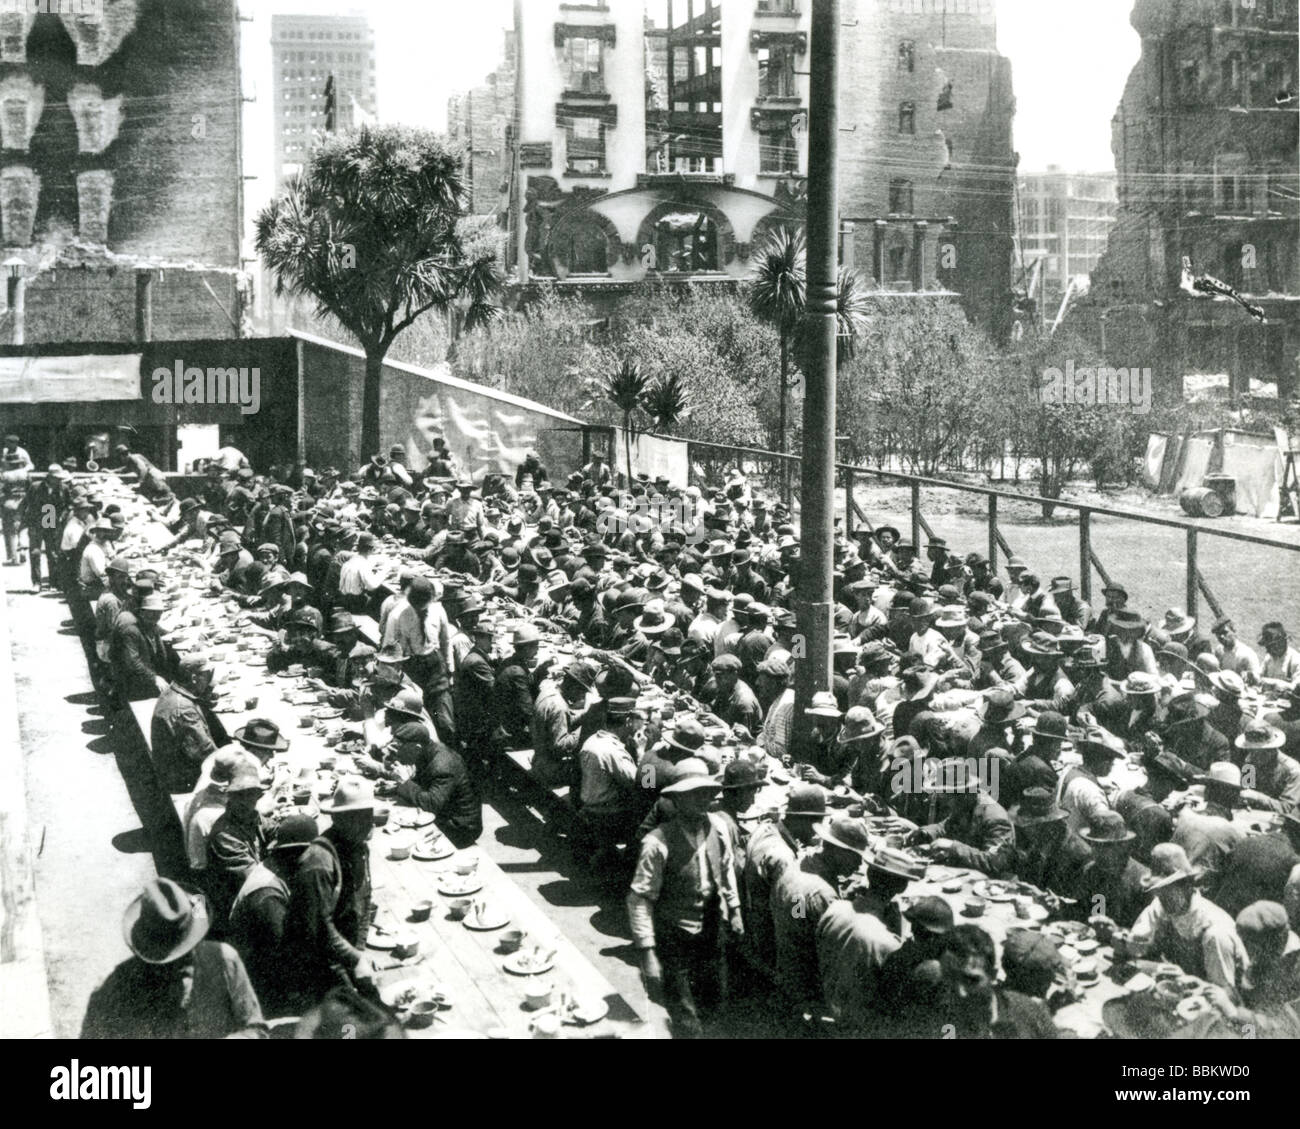 THE GREAT DEPRESSION - A New York soup kitchen in the 1930s - Stock Image